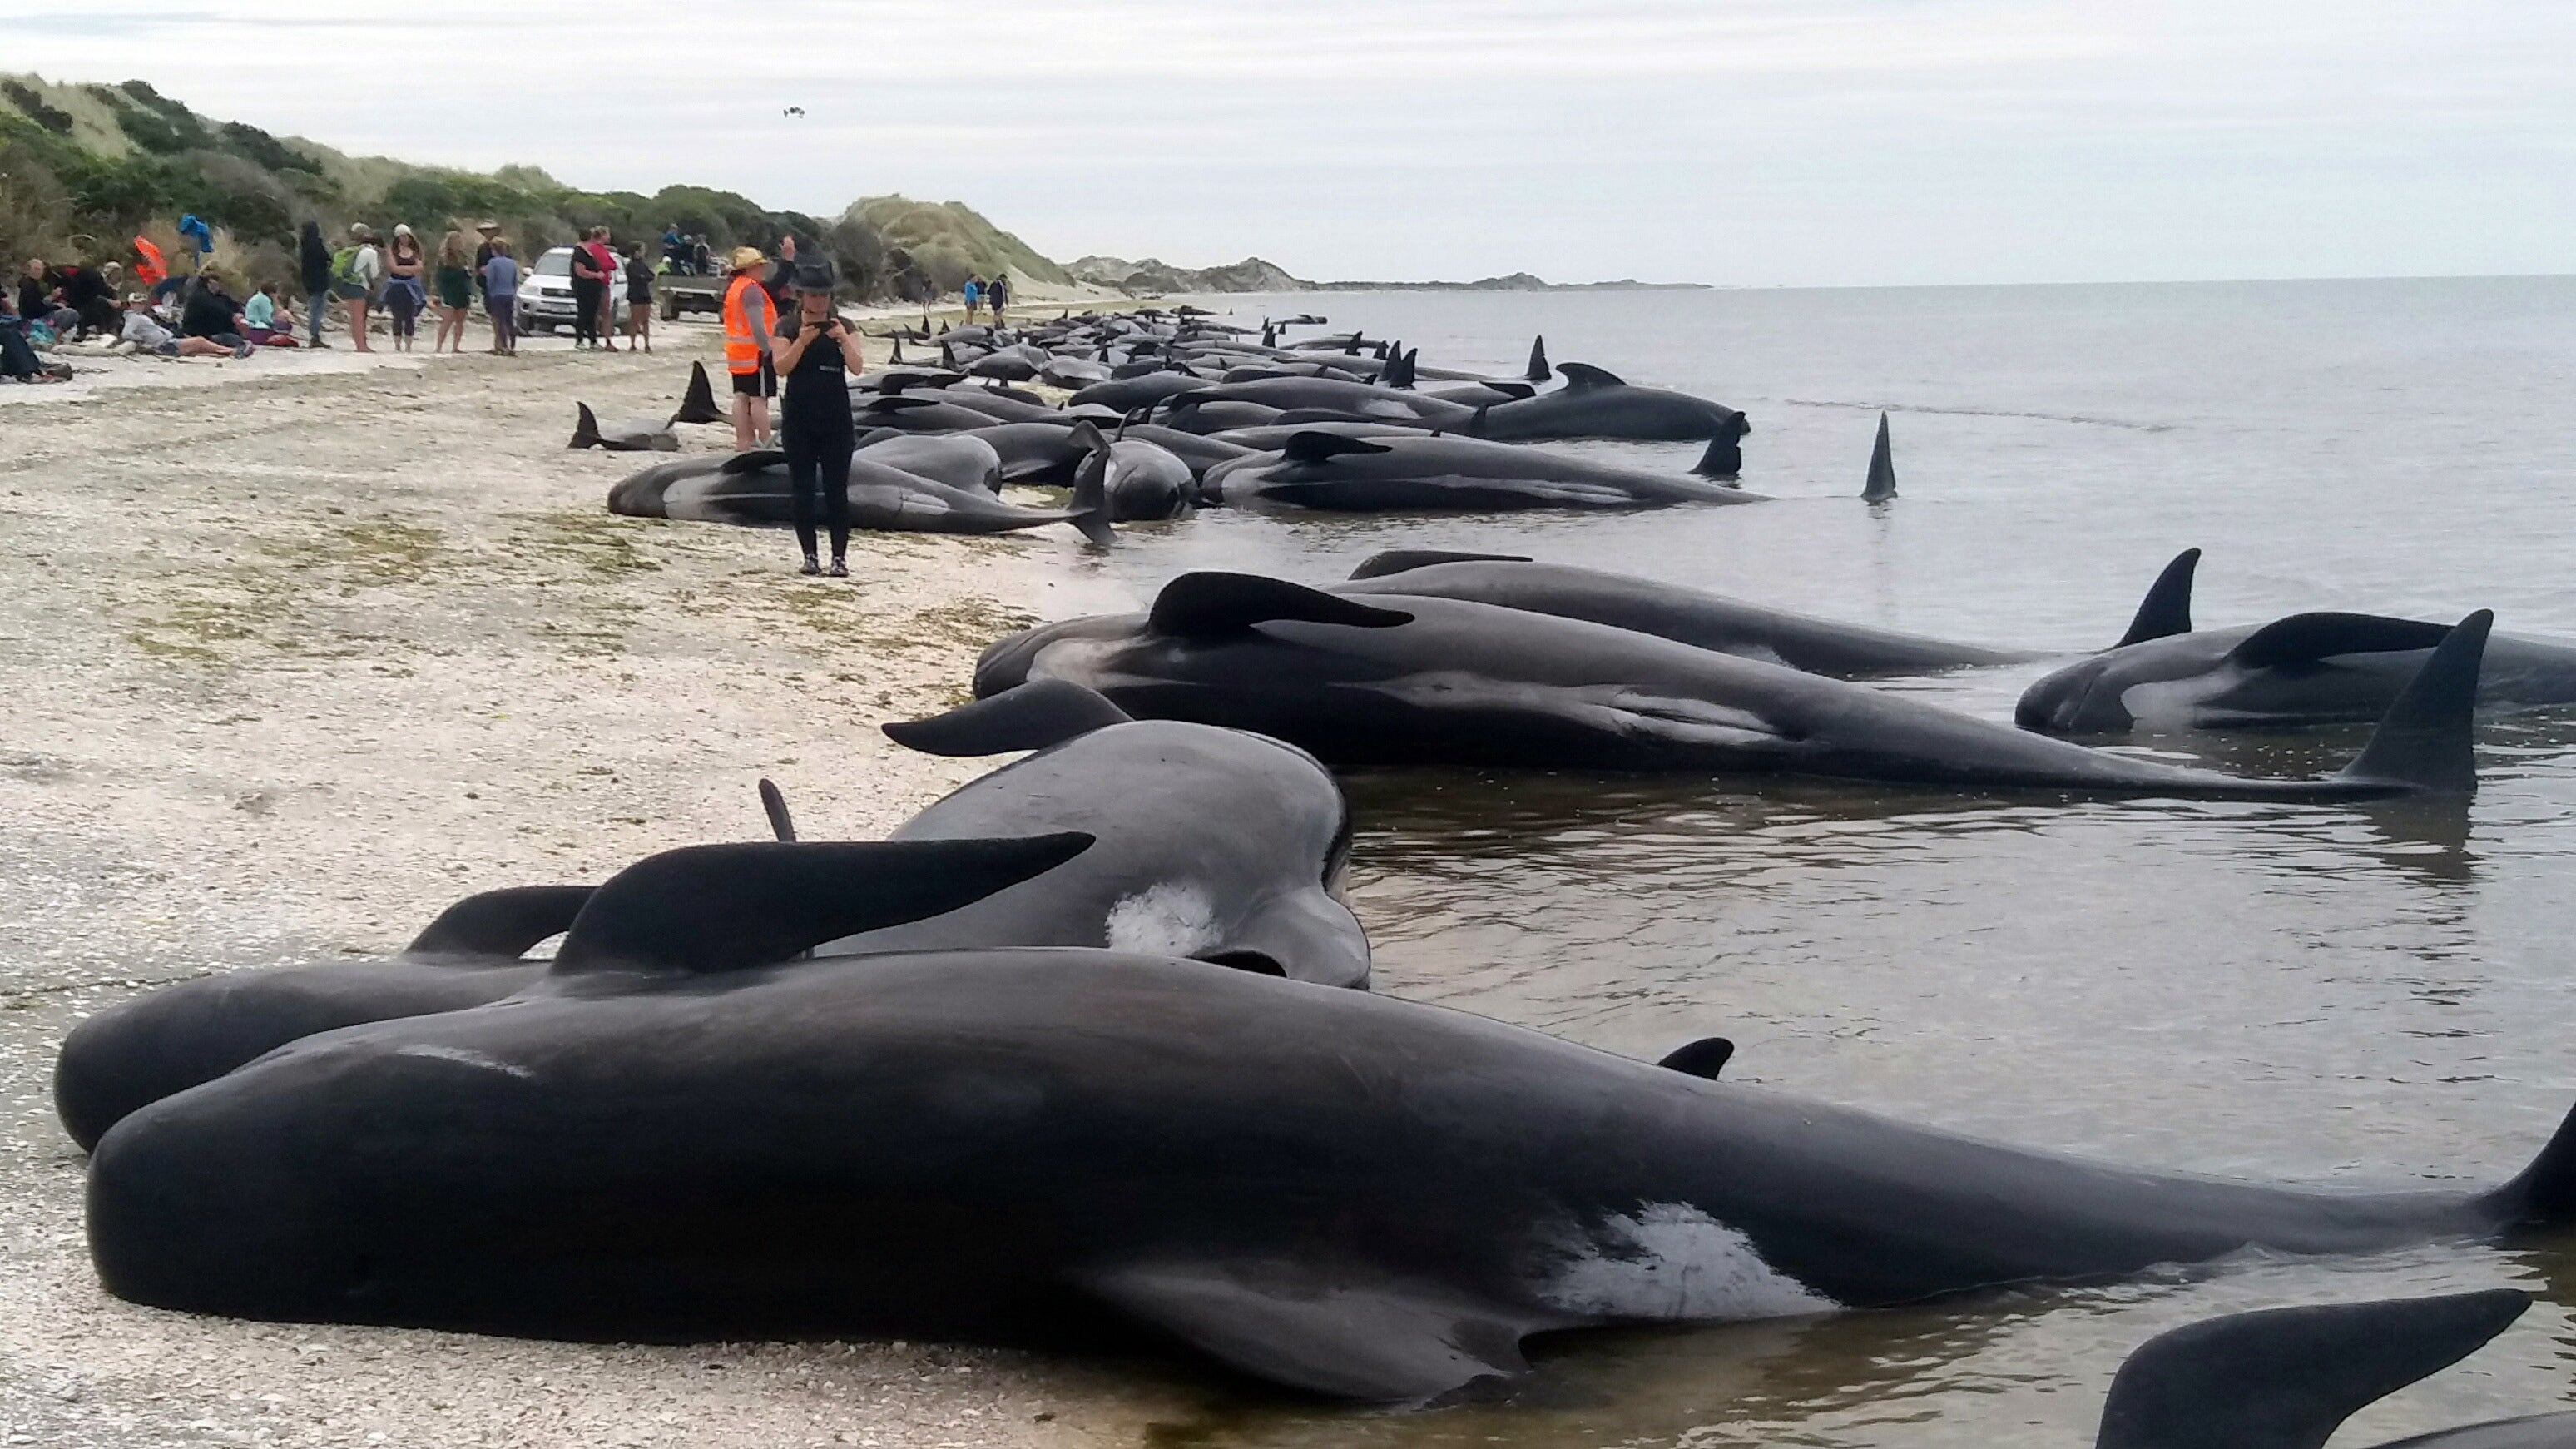 Hundreds Of Whales Are Dead Following A Horrific Mass Stranding In New Zealand